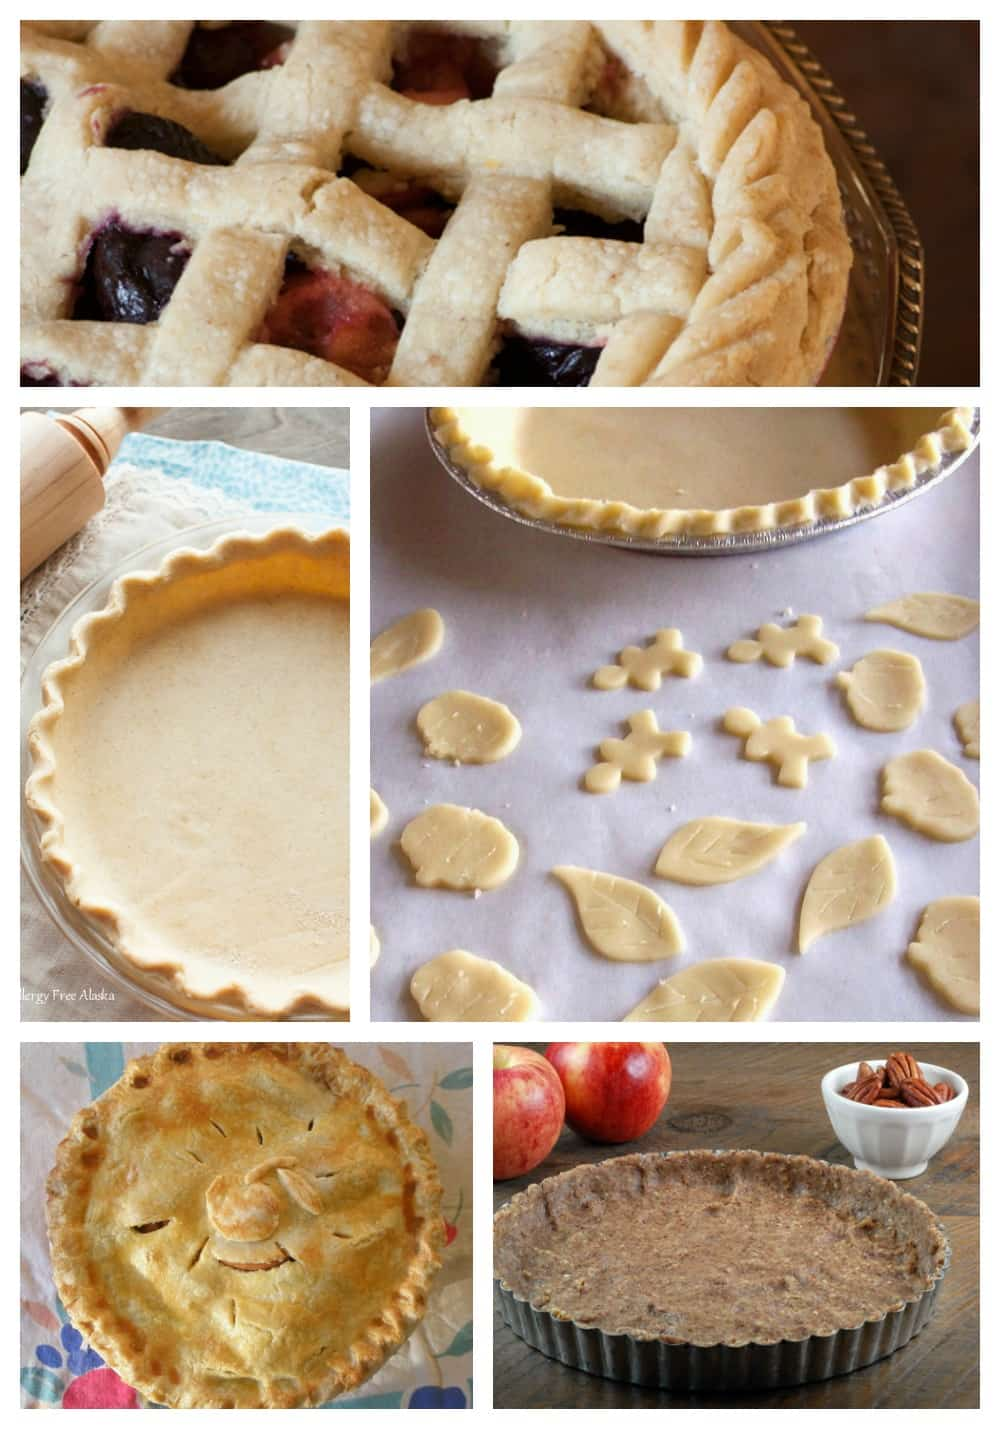 ... Gluten-Free Pie Crust Recipes (Shown is Gluten-Free Flaky Pie Crust